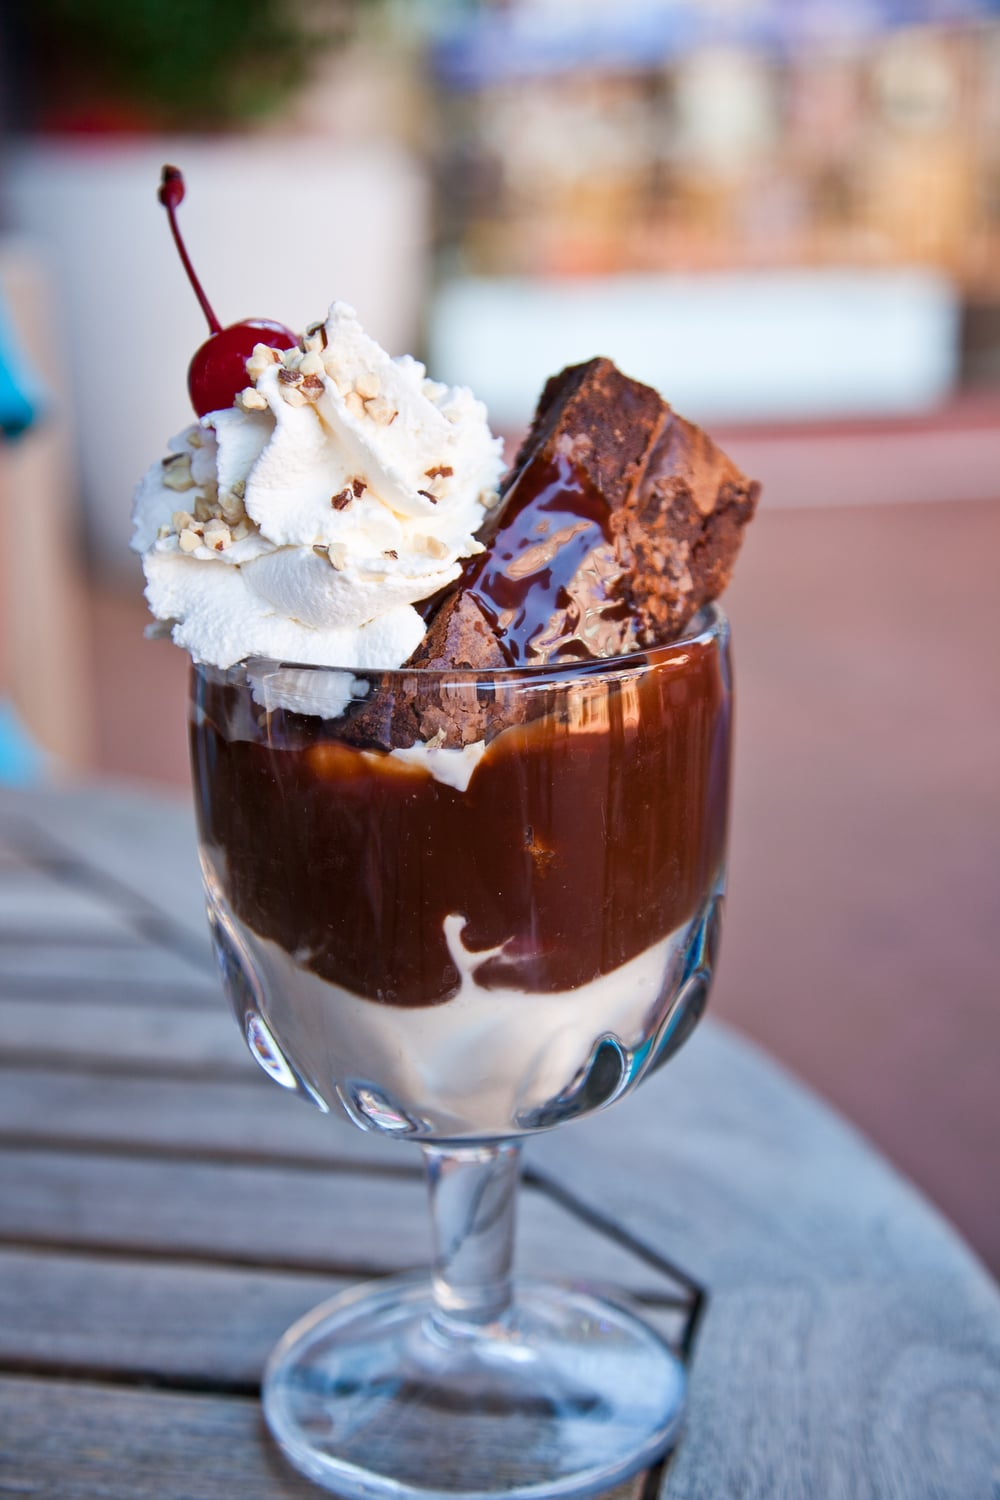 trisa-taro-ghirardelli-square-ice-cream-san francisco.jpg